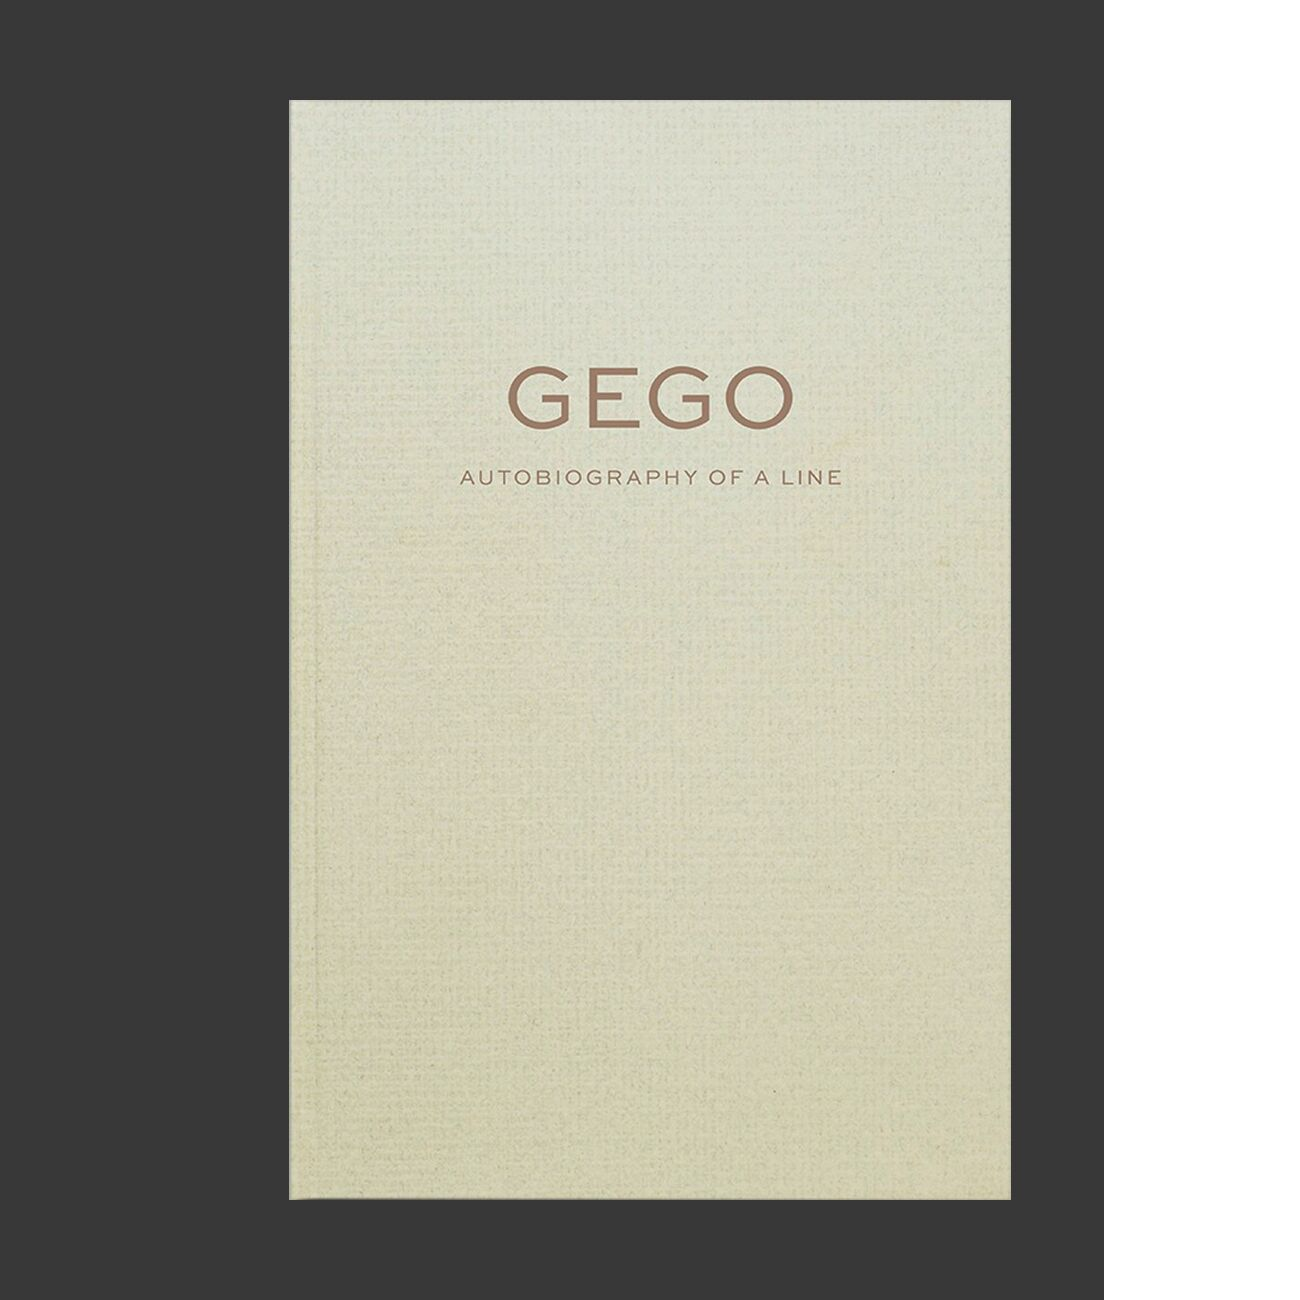 Gego — Autobiography of a Line